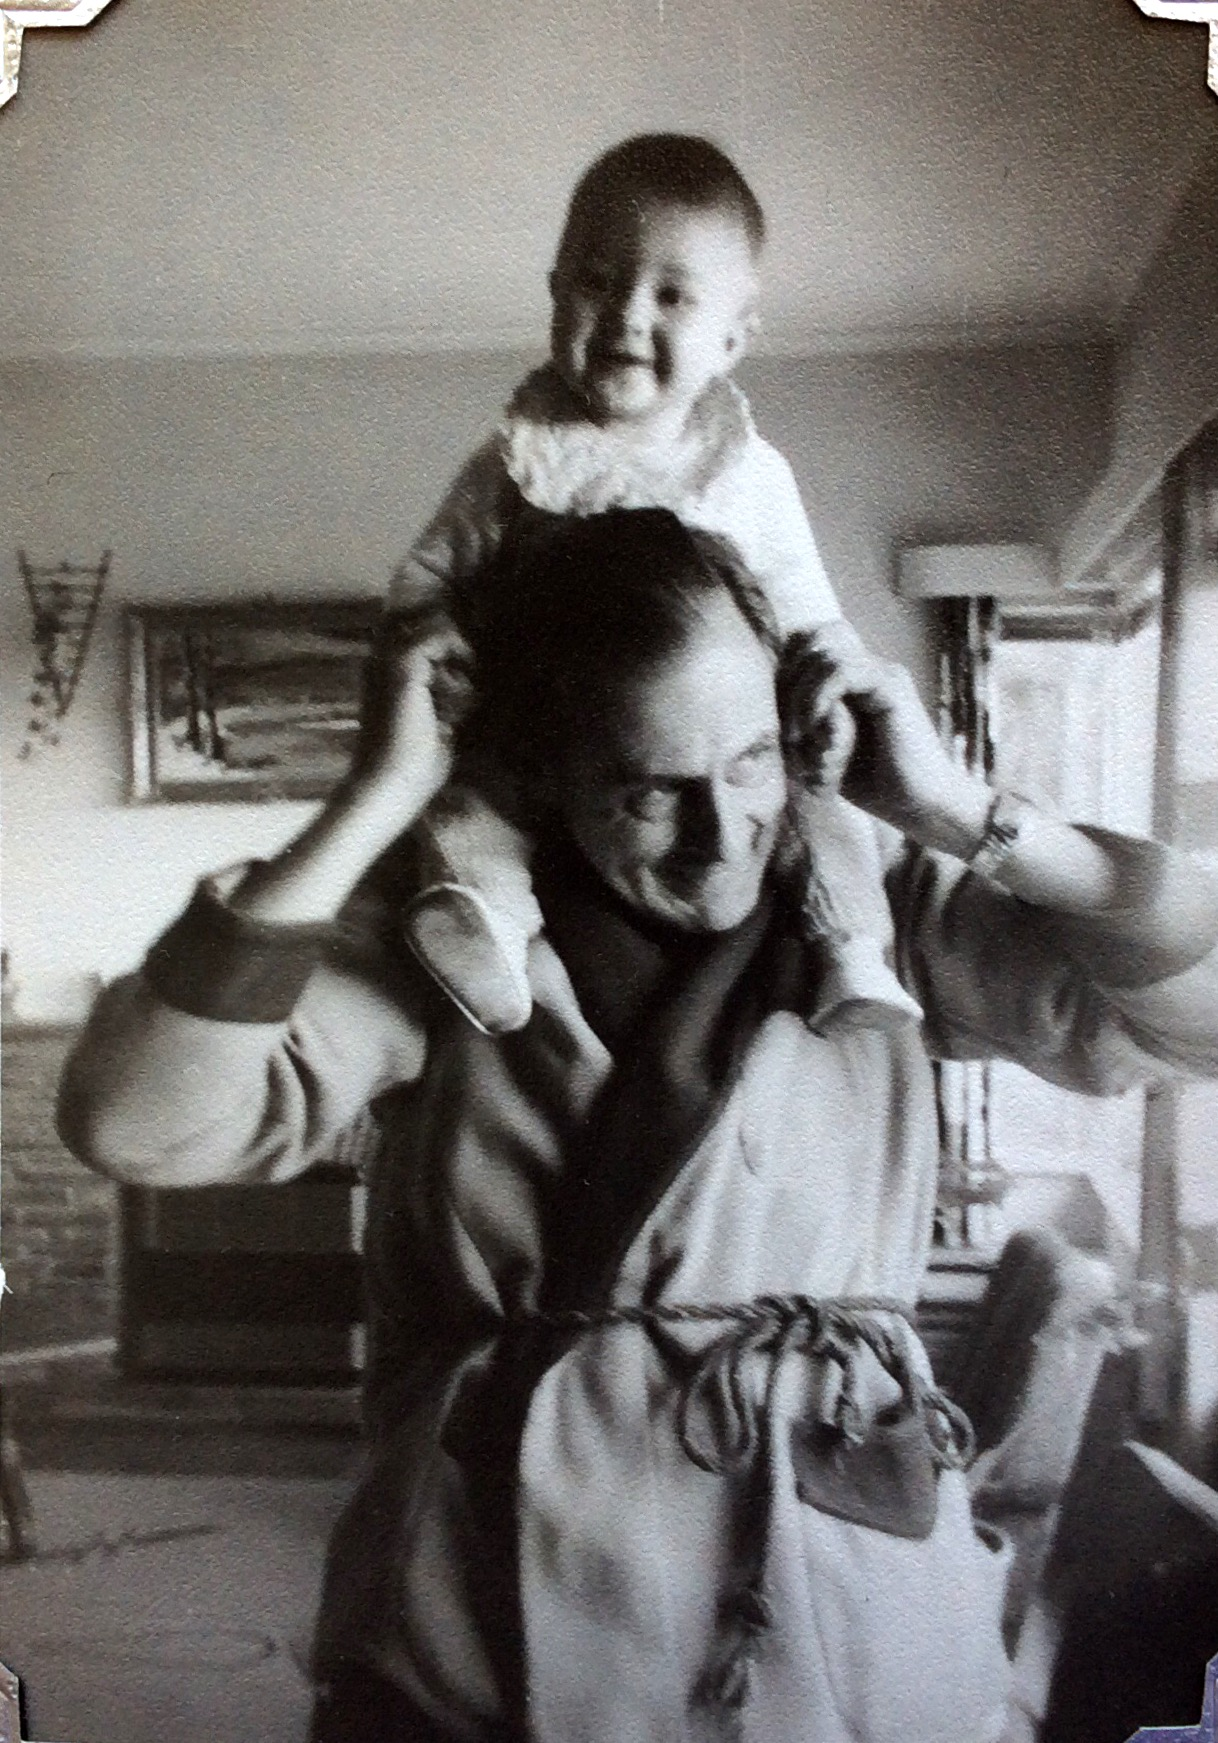 MICHAEL WITH HIS GRANDAD...CAPE TOWN, 1958...